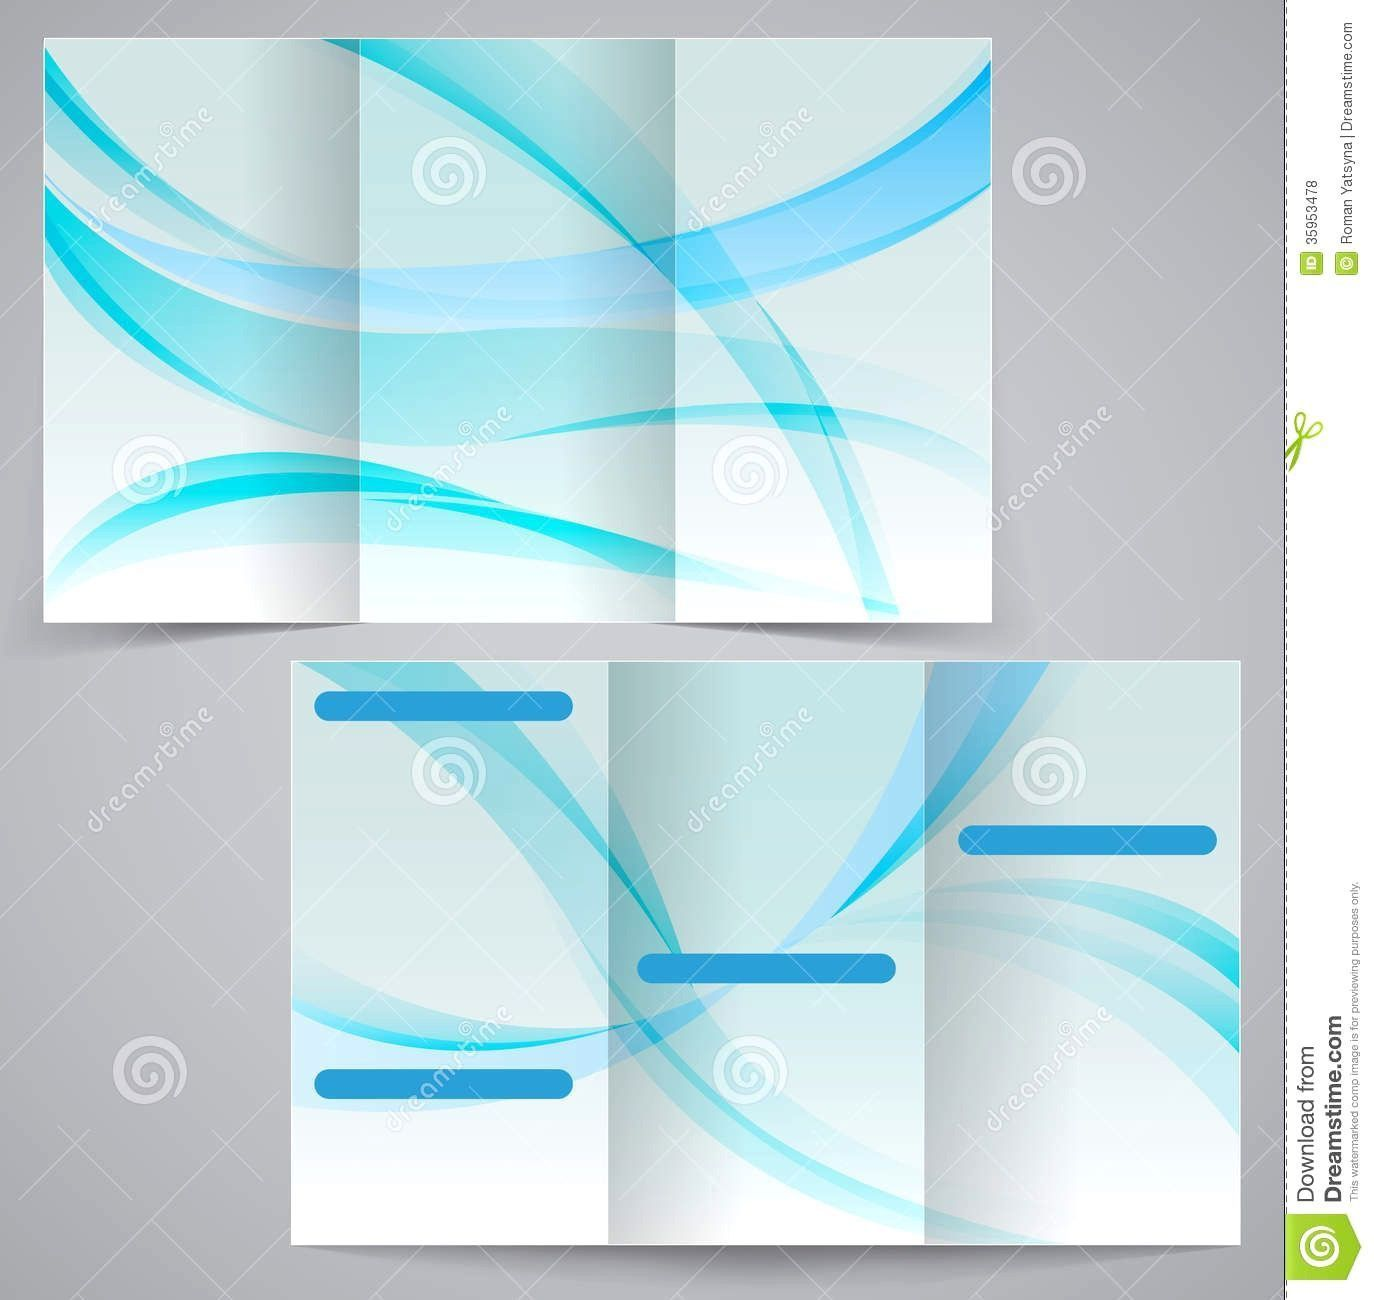 000 Unique Brochure Template For Word 2010 Concept  Download Microsoft Free Blank Tri FoldFull